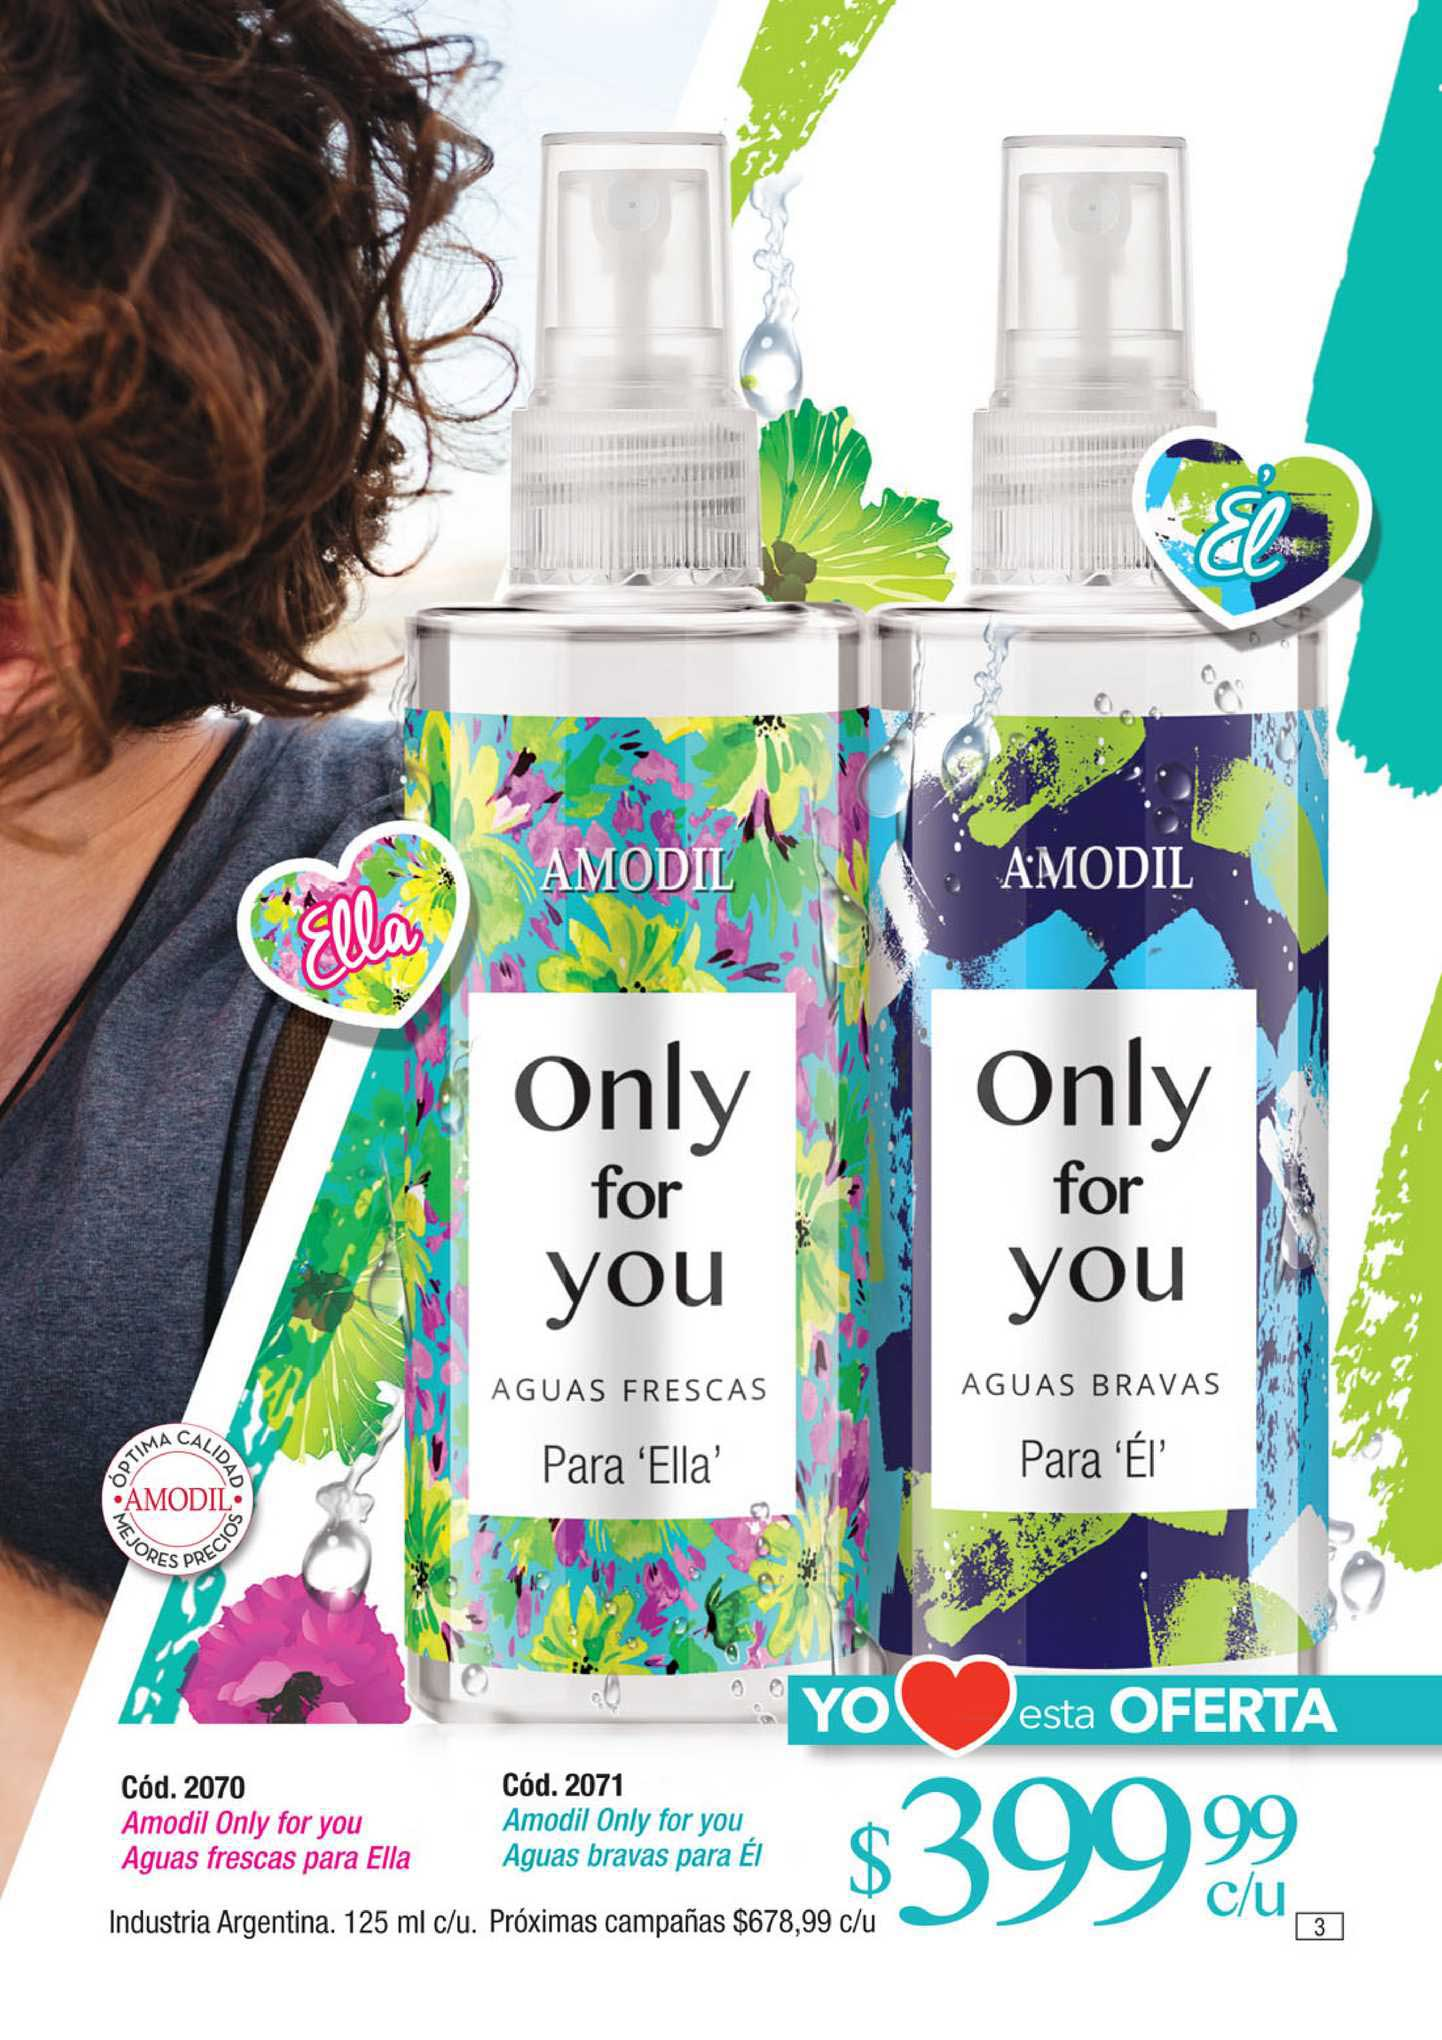 Amodil Amodil Only For You Aguas Frescas Para Ella Amodil Only For You Aguas Bravas Para éi